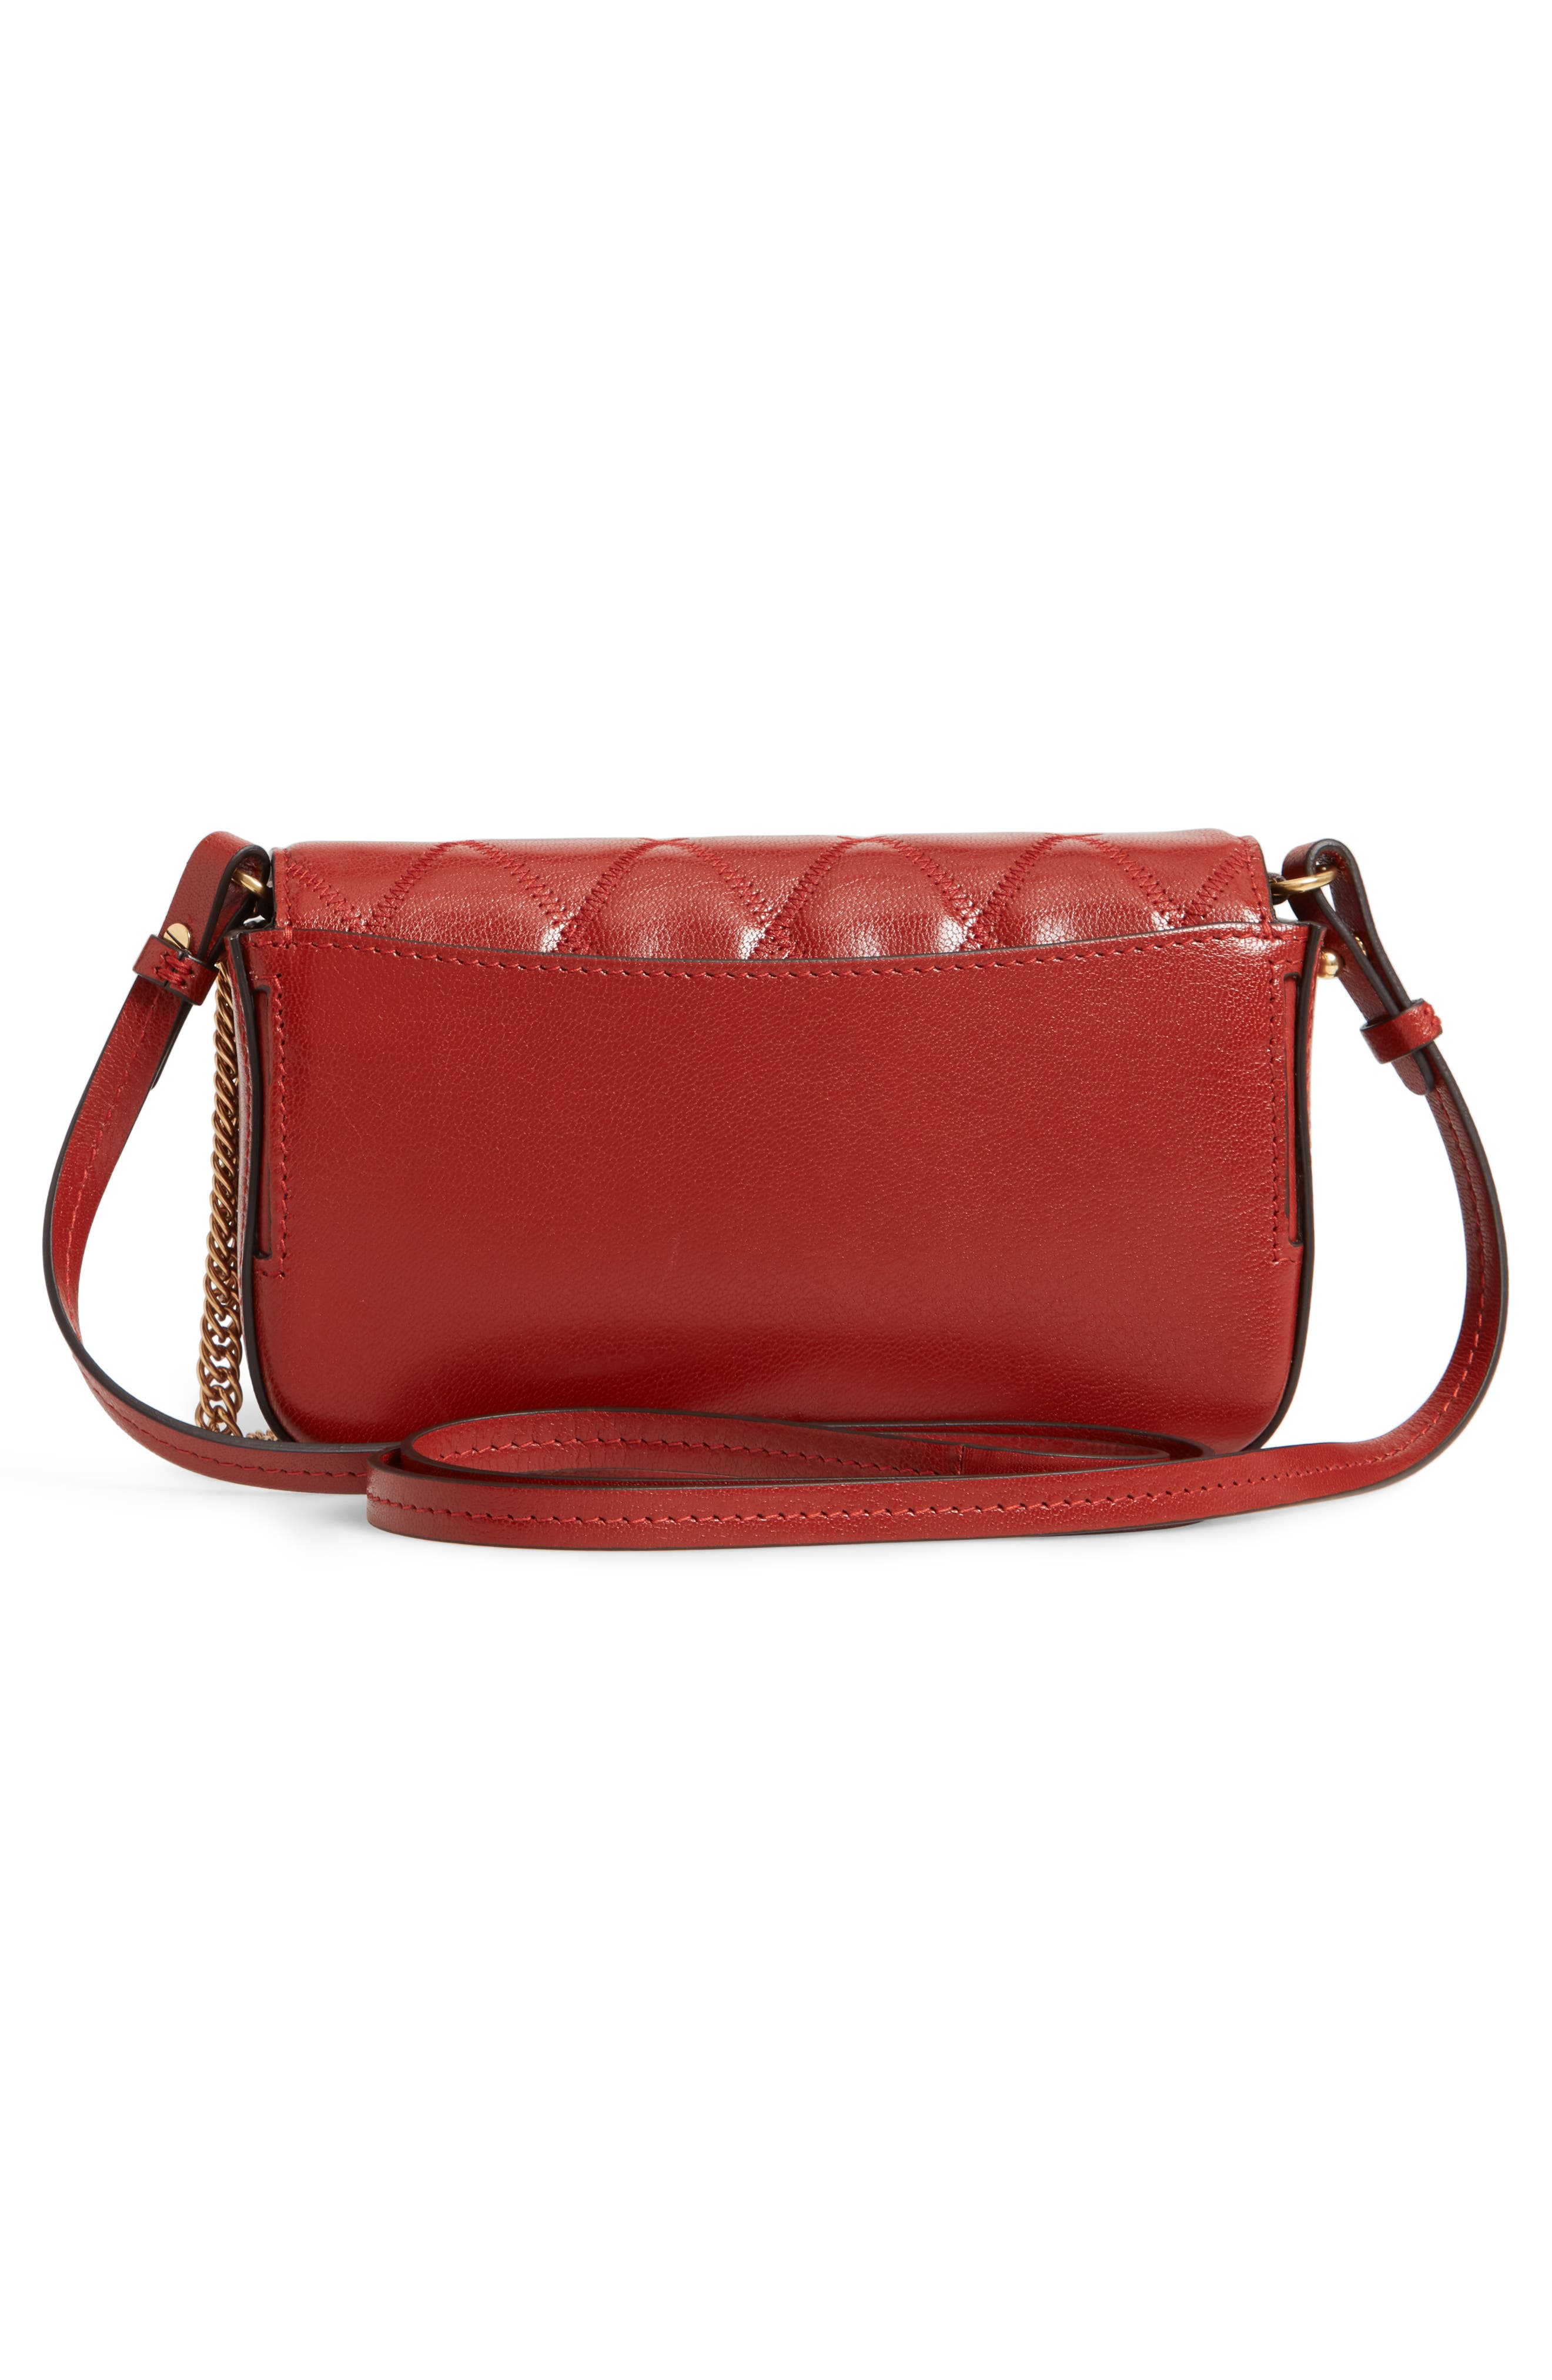 Mini Pocket Quilted Convertible Leather Bag,                             Alternate thumbnail 4, color,                             TERRACOTTA